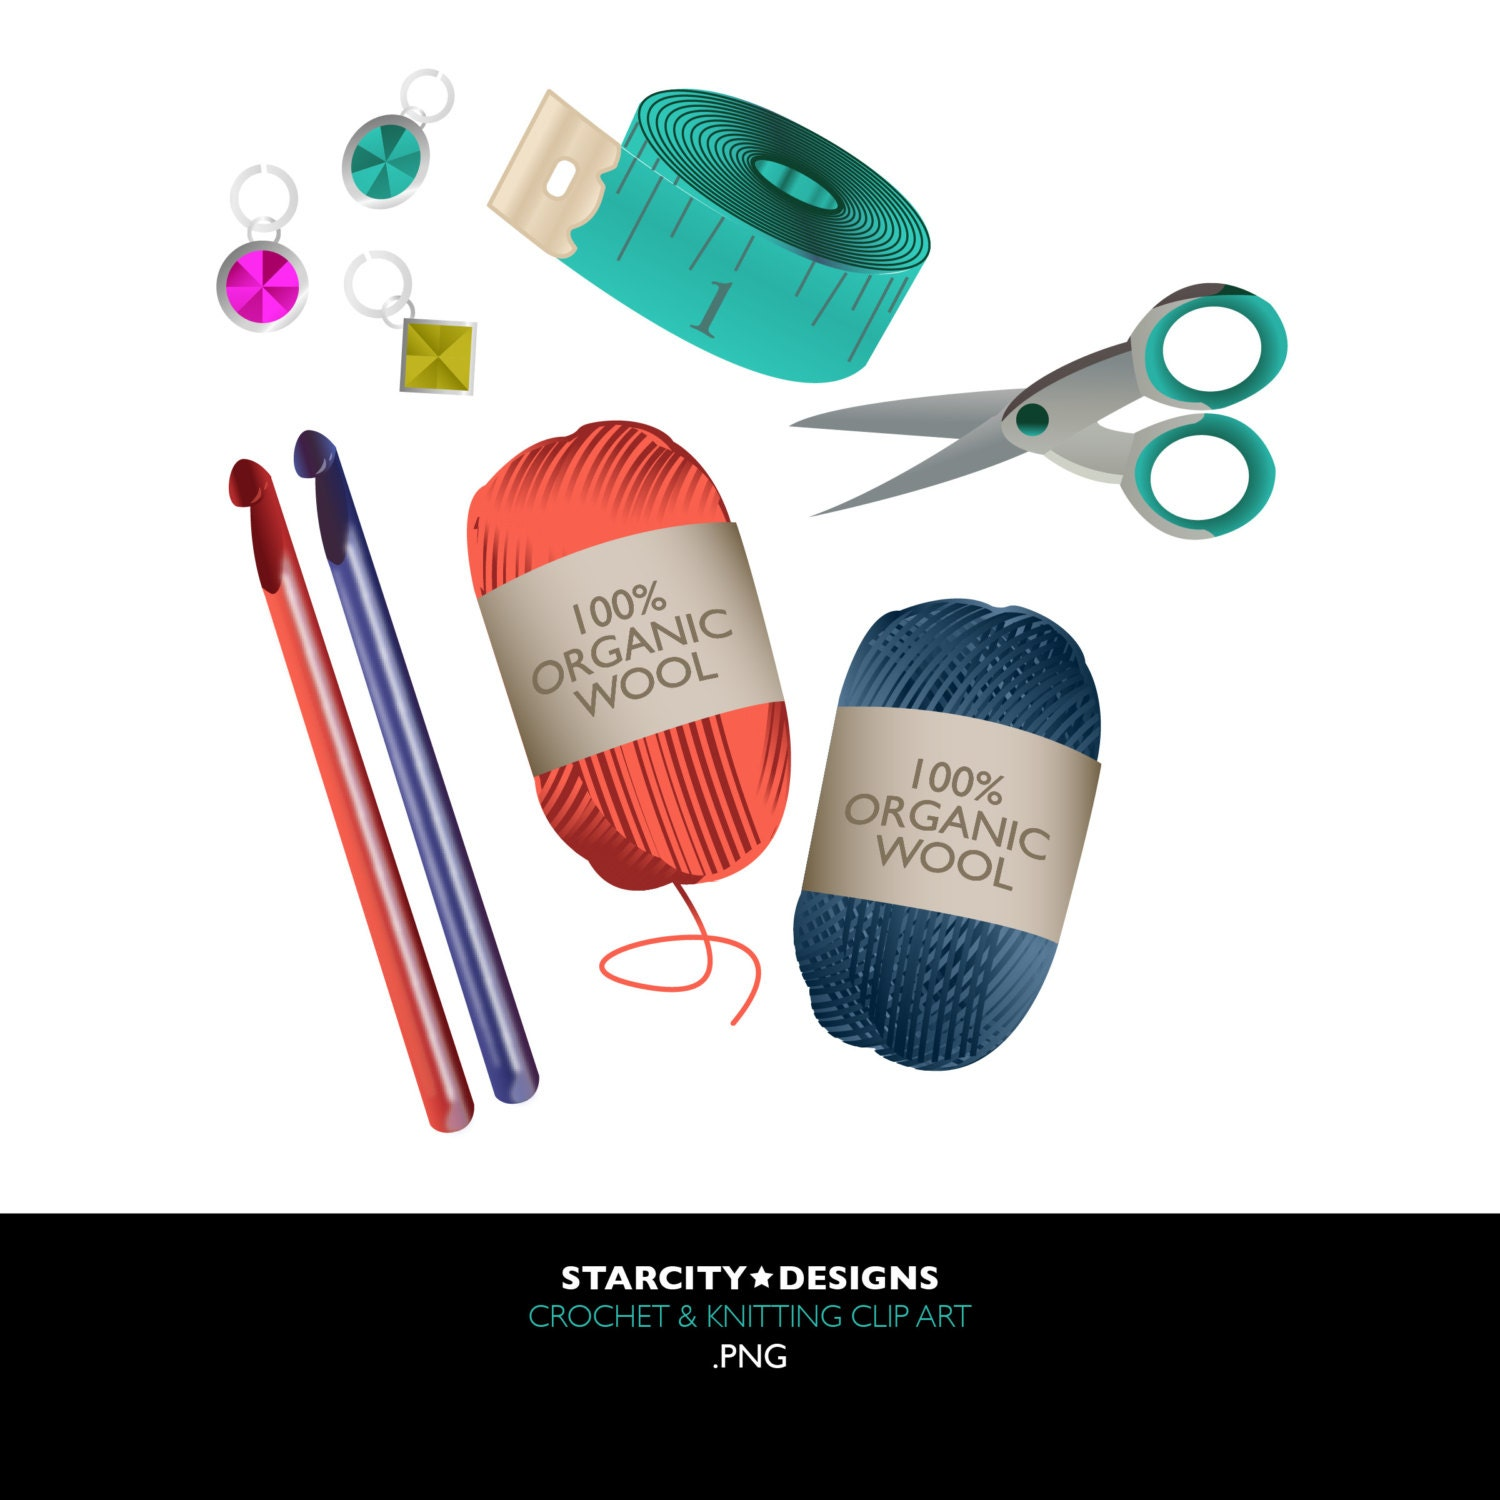 Knit And Crochet Clipart : The gallery for gt crocheting and knitting clipart